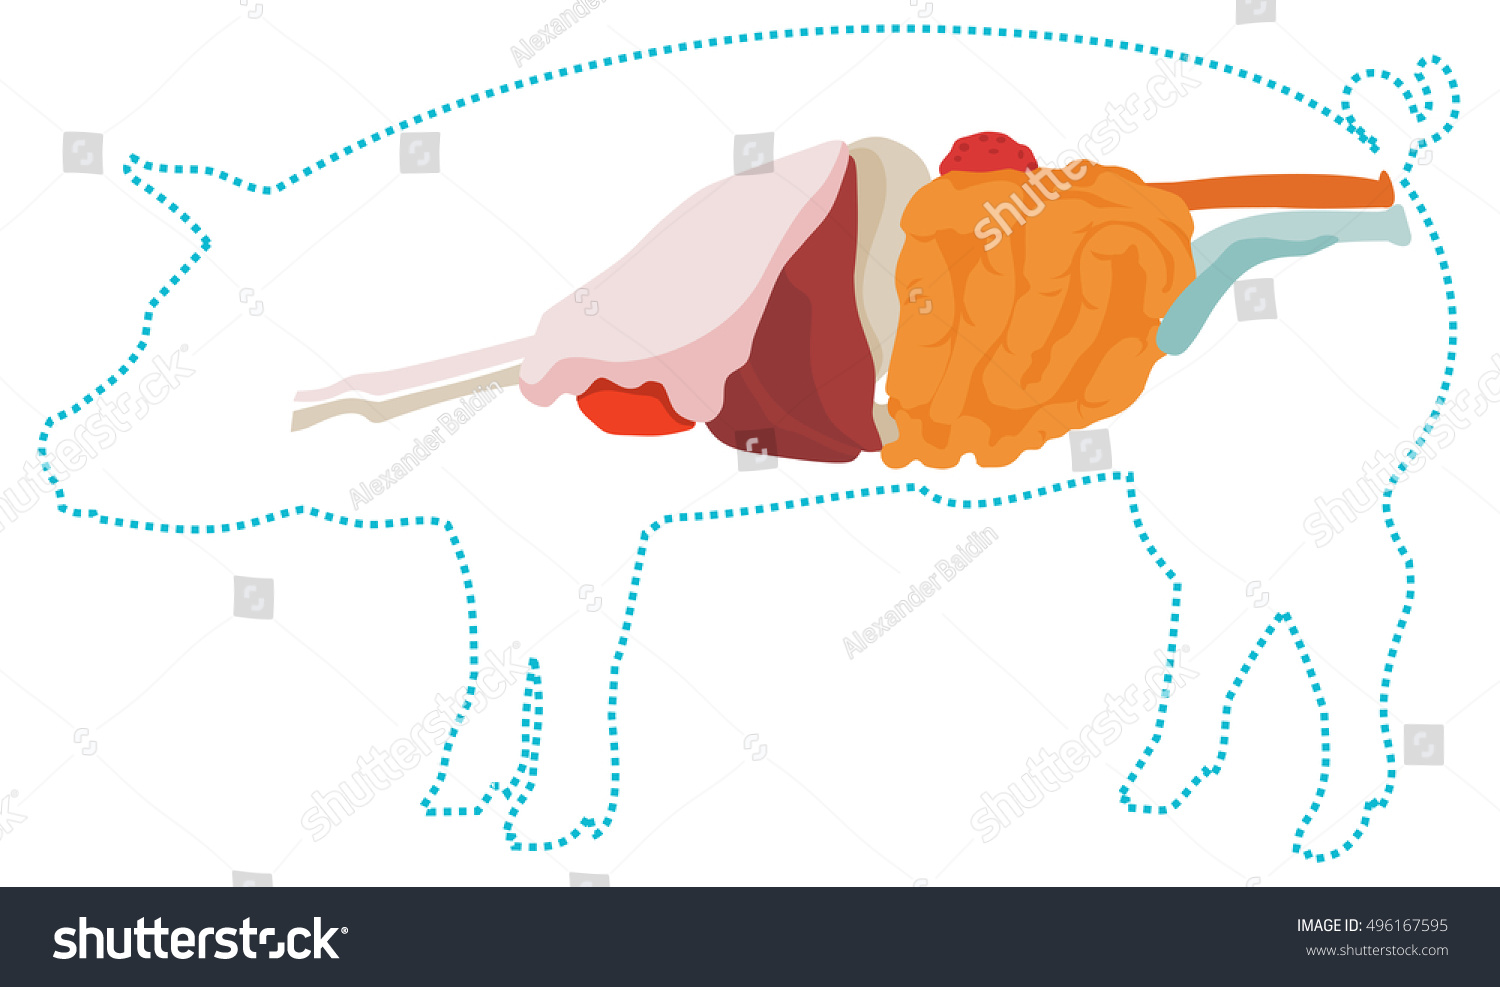 Vector Pig Anatomy Digestive System Stock Vector (Royalty Free ...